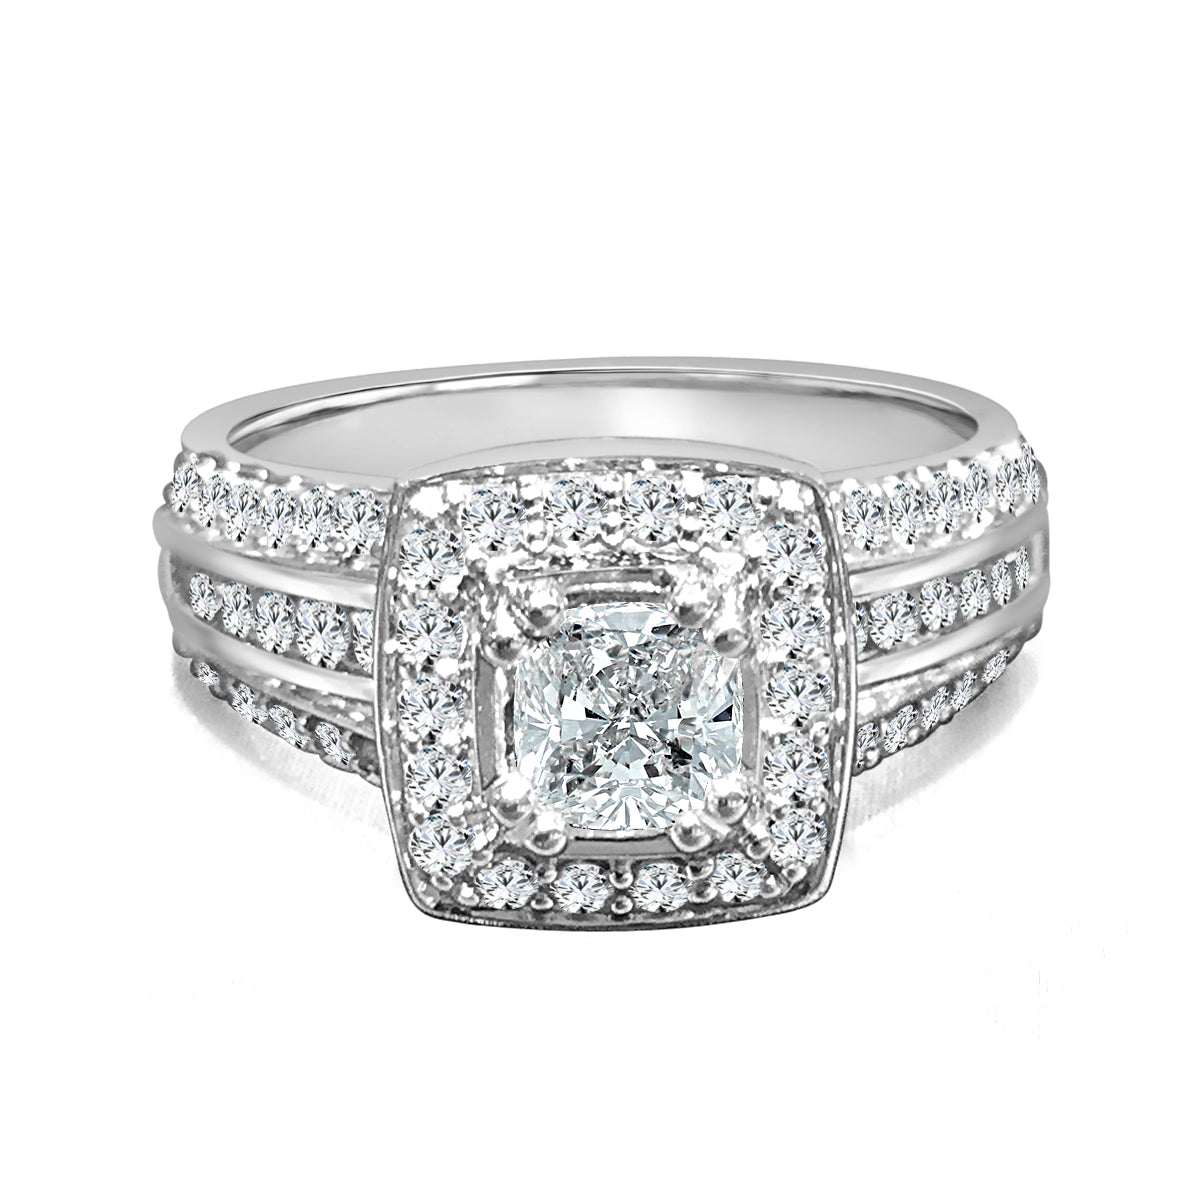 Three Row Diamond Engagement Ring With Cushion Shaped Halo And Center